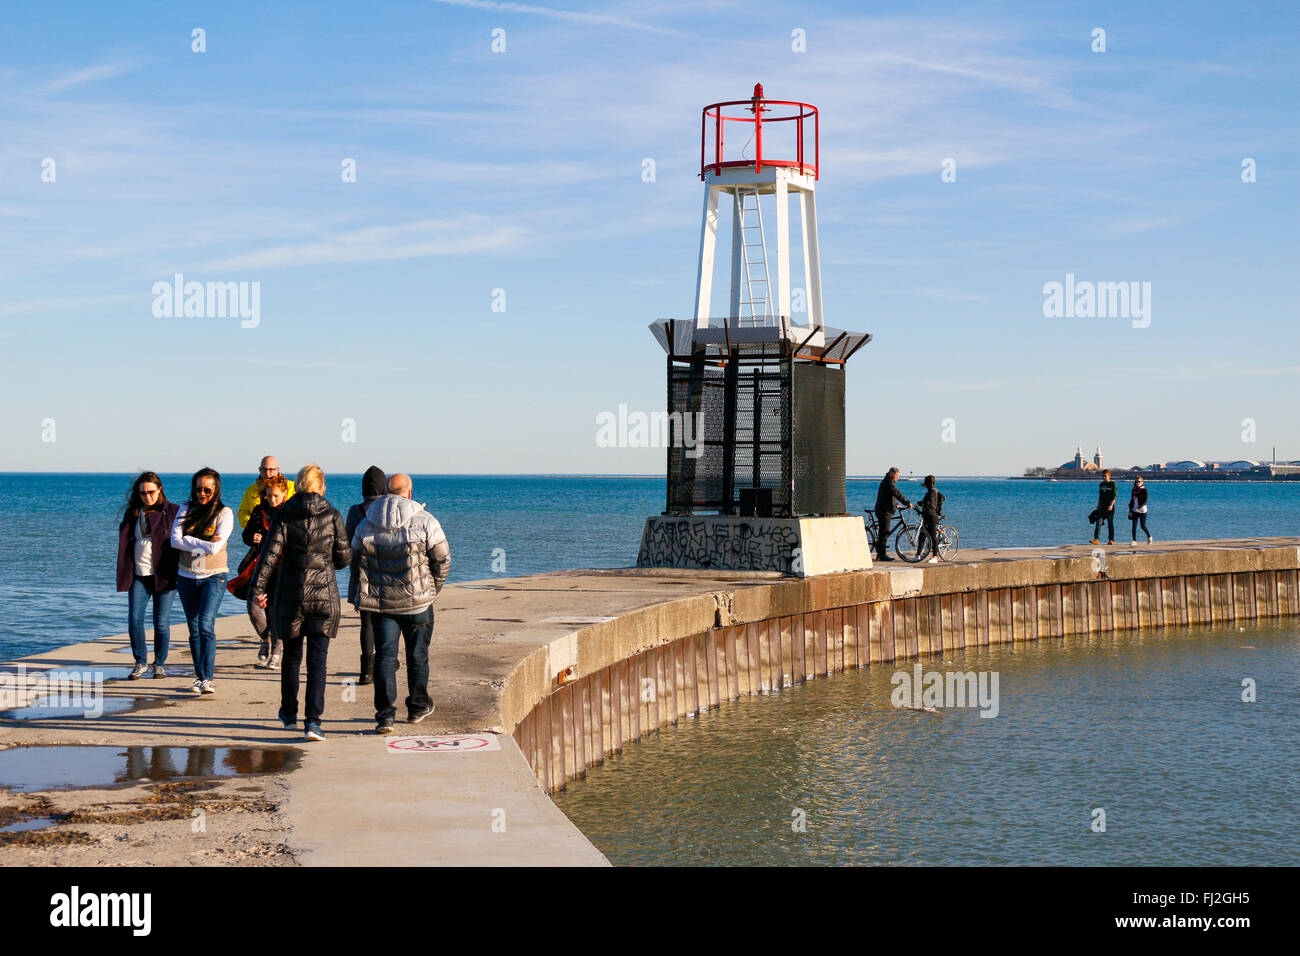 People enjoying a warm February day on the pier at North Avenue Beach. Chicago, Illinois. - Stock Image